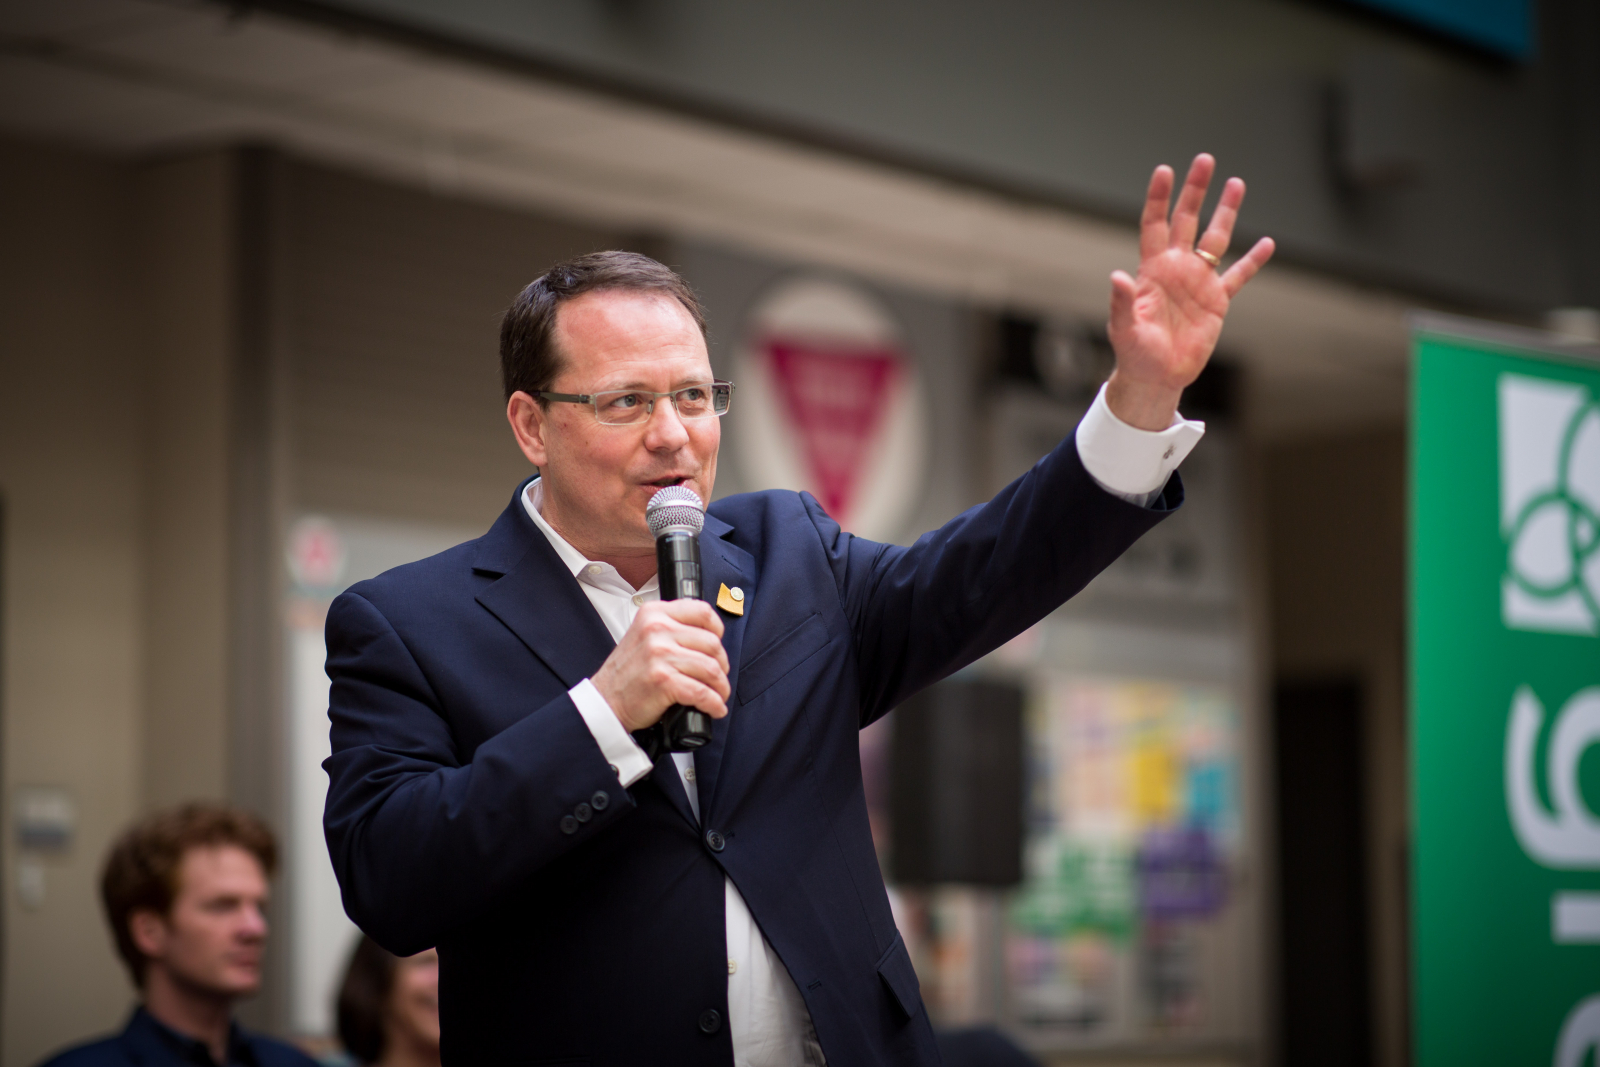 Mike Schreiner, Green Party of Ontario